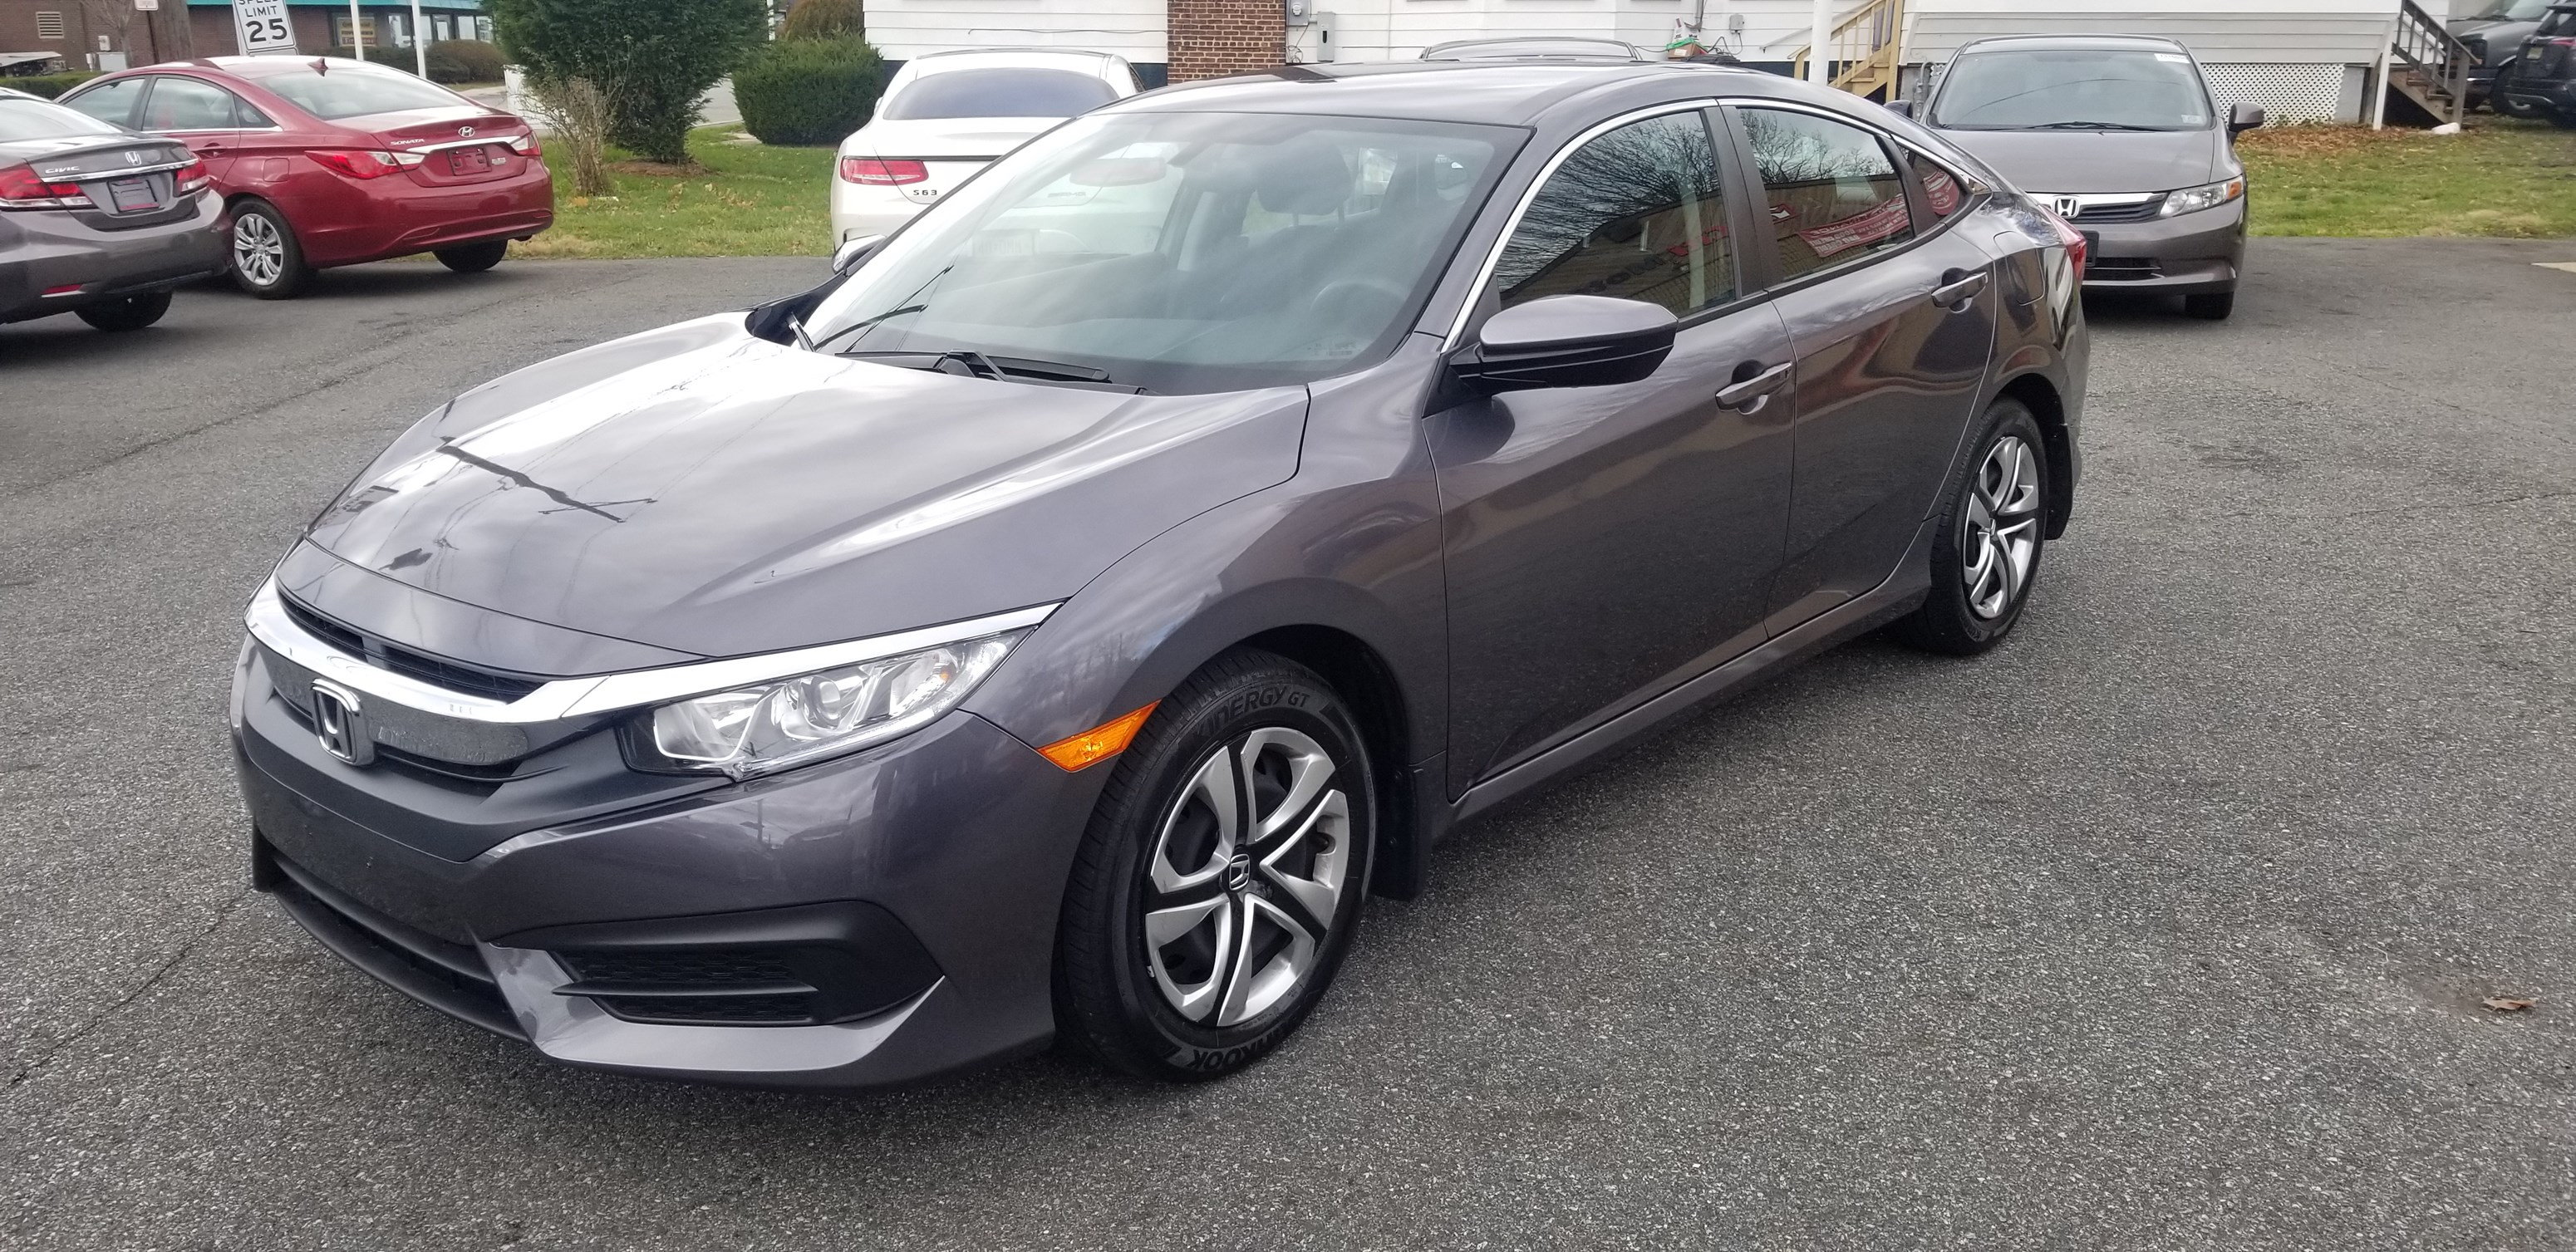 Carfax Used Cars Raleigh Nc Beautiful 2016 Honda Civic Lx 1 8 4 Cylinder Clean Carfax 1 Owner Only 13k